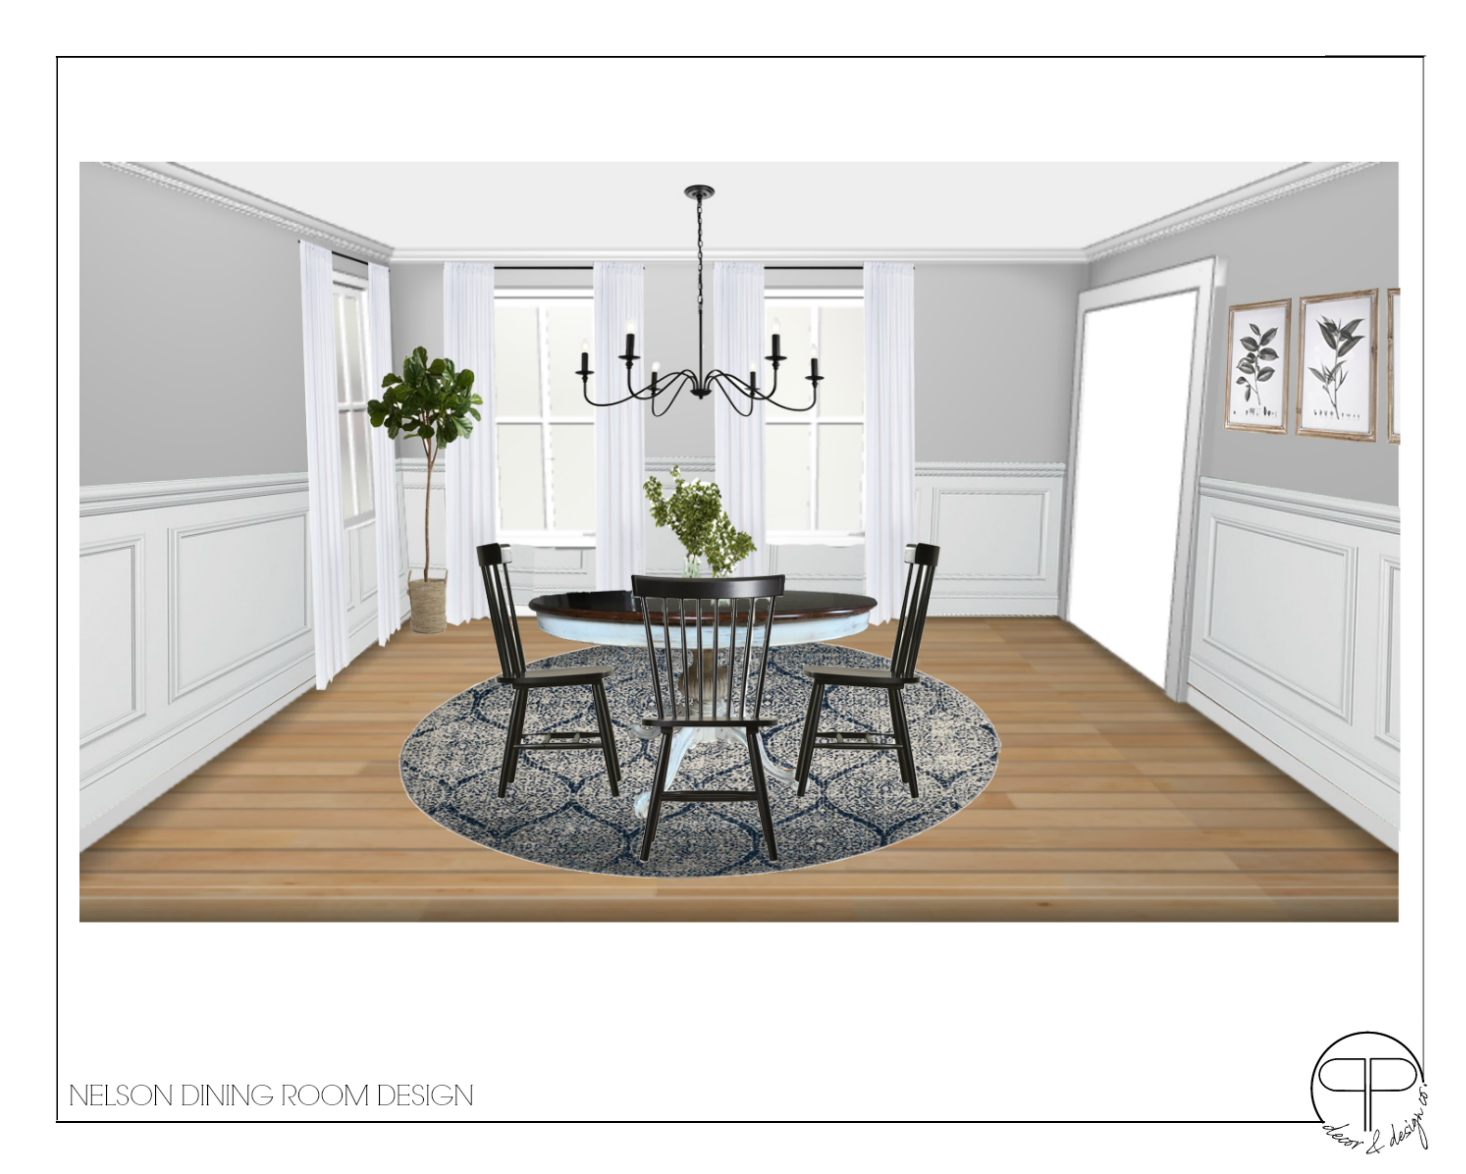 Nelson_Dining_Room_Design.png